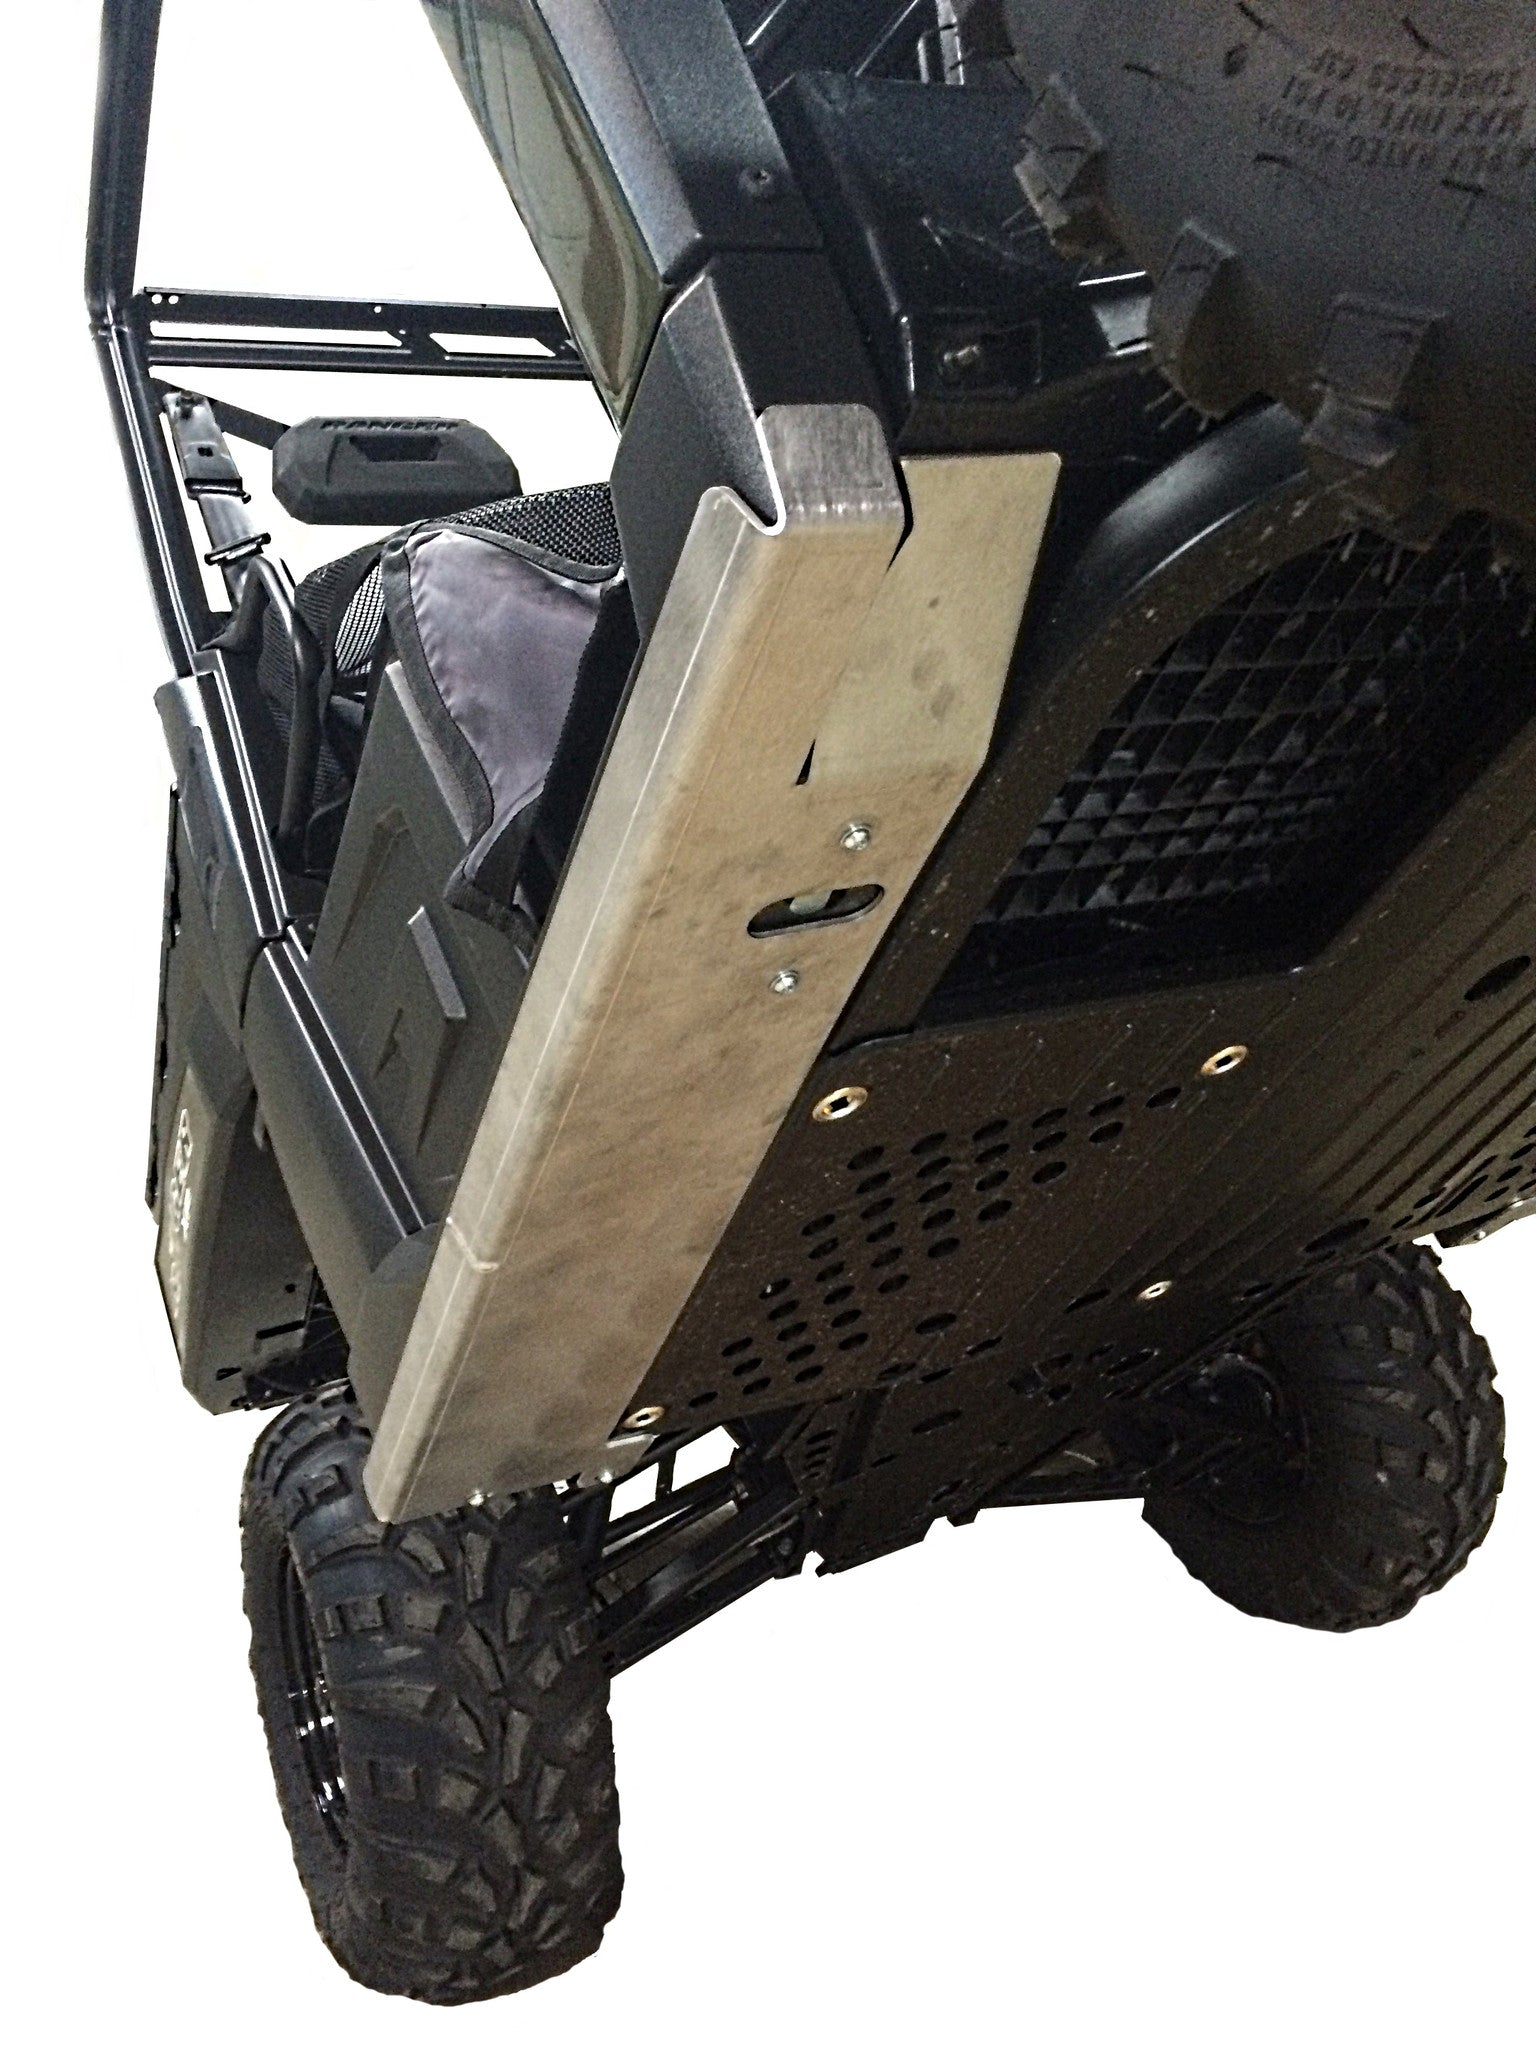 2-Piece Aluminum Rock Slider Set, Polaris Ranger XP 900 High Lifter Edition